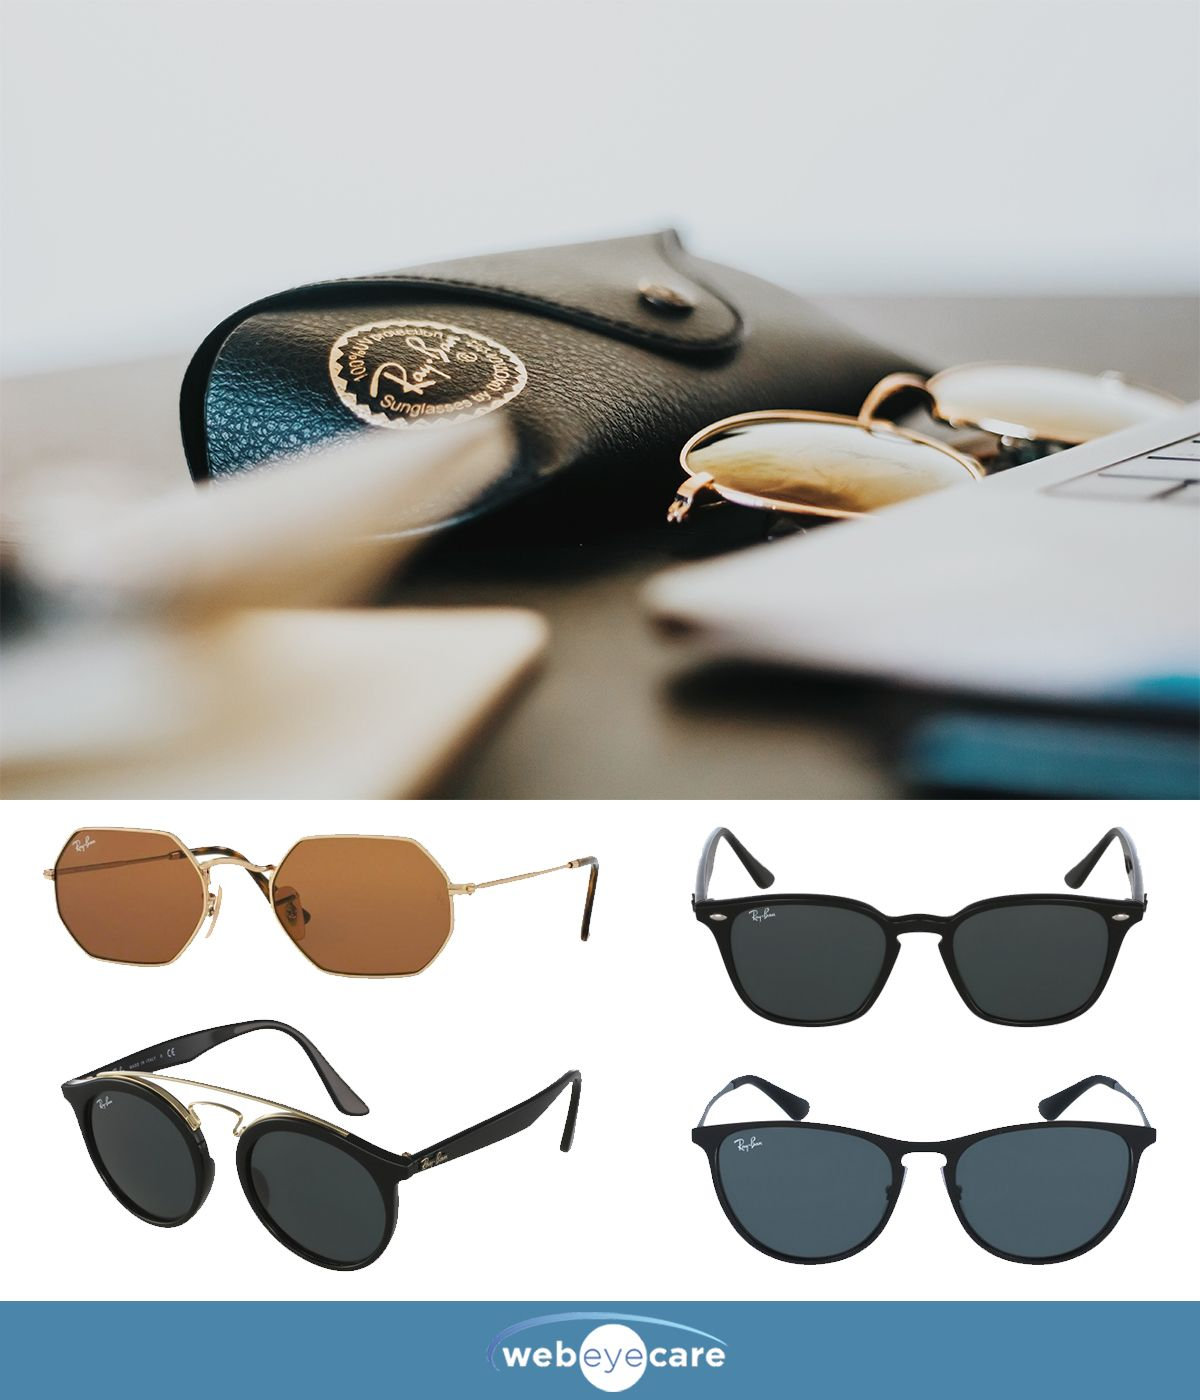 125ec66b378d Stylish Ray-Ban sunglasses for women at a discount price. Shop trendy  glasses from your favorite brands at WebEyeCare.com.